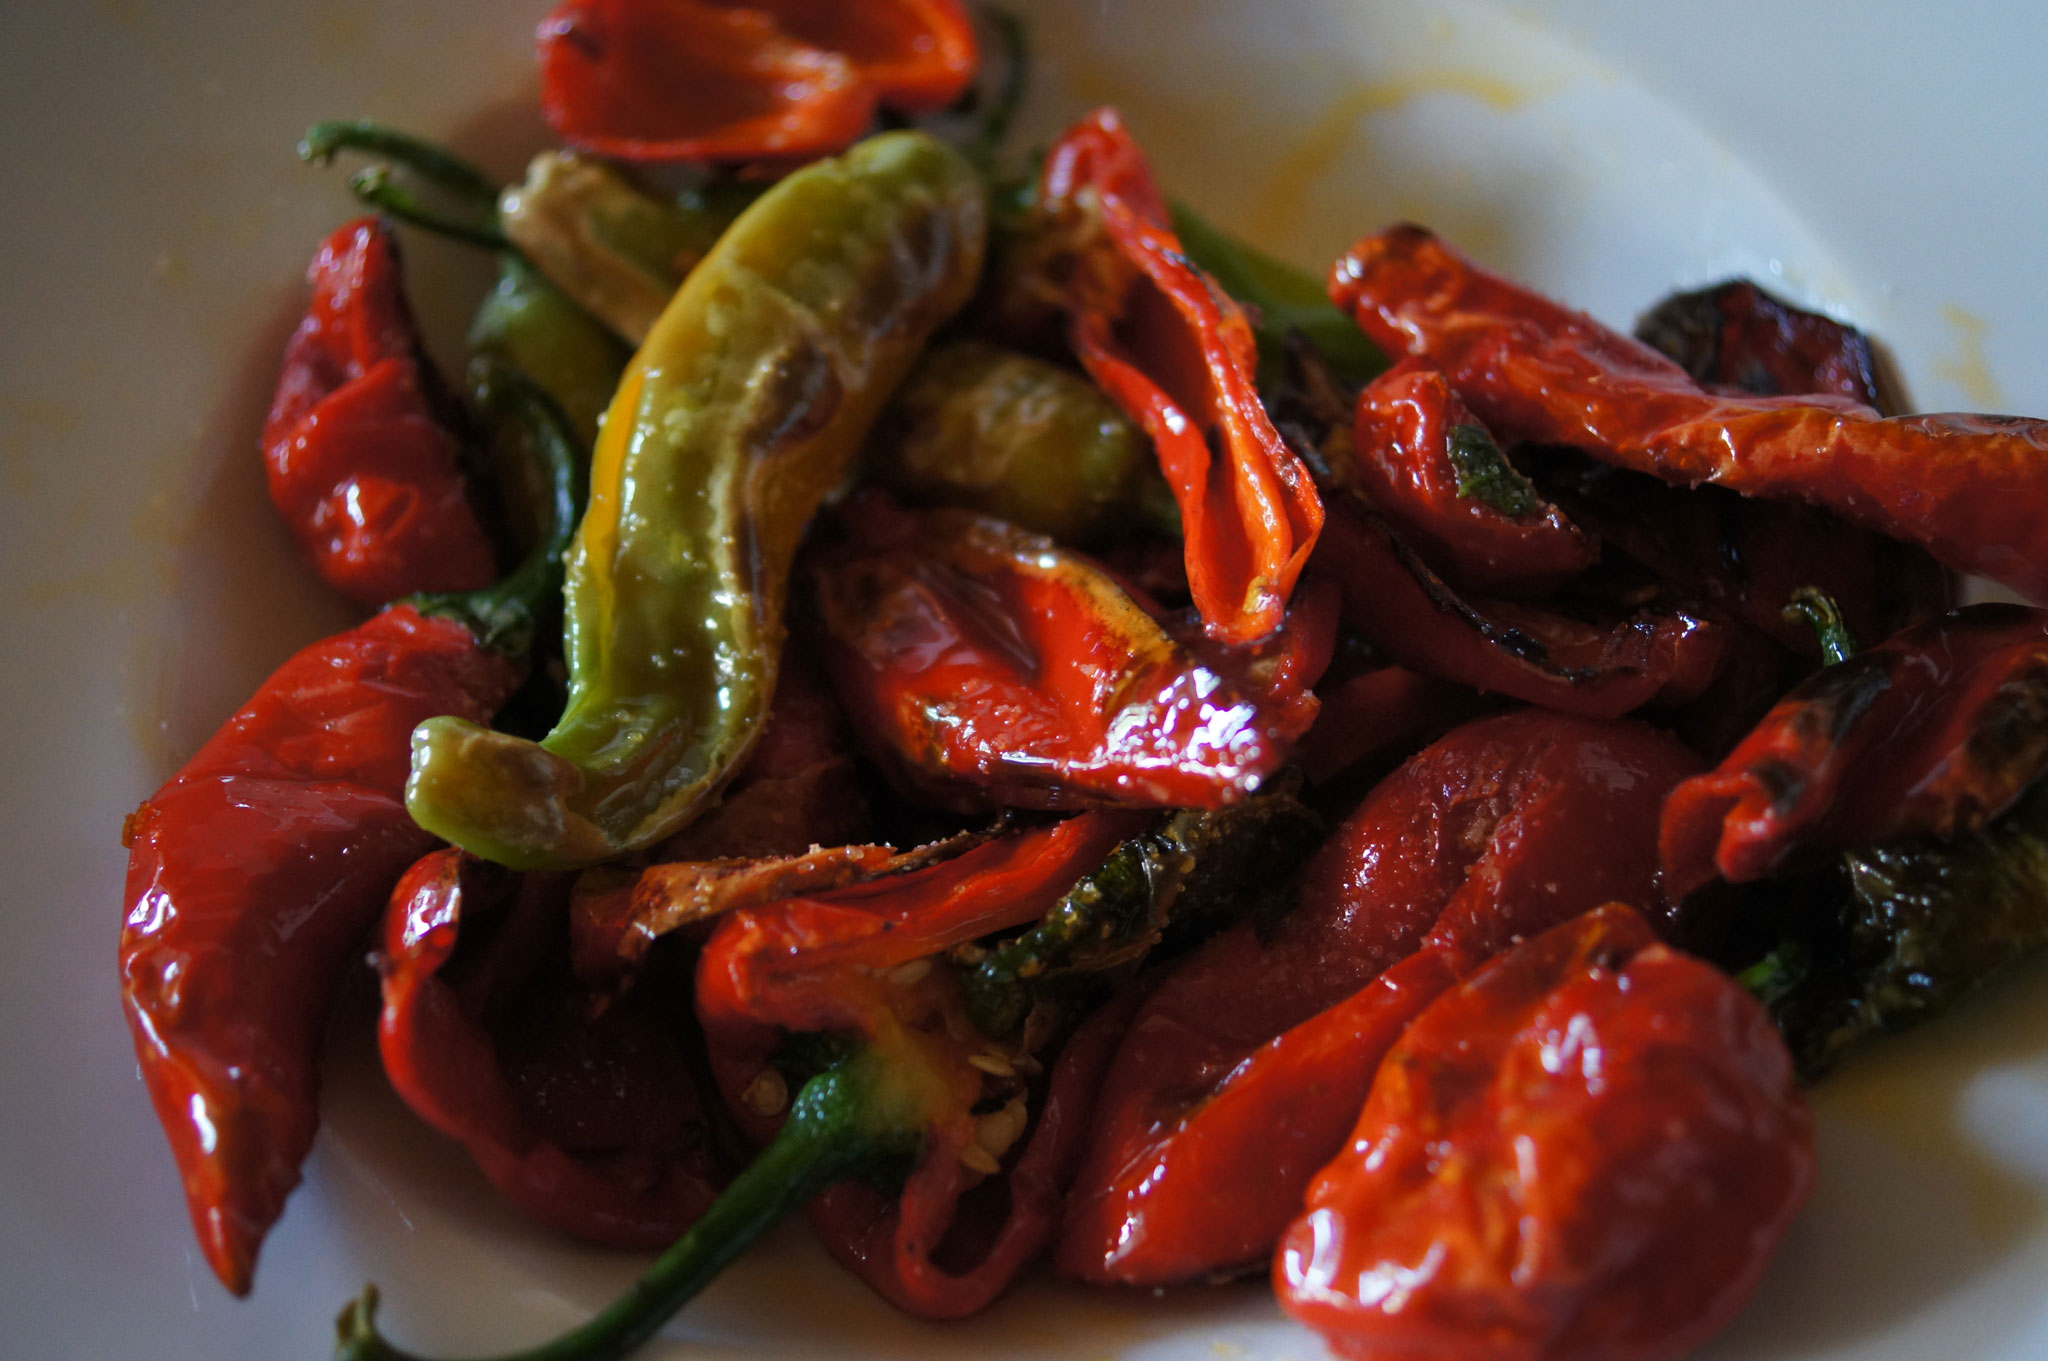 The Challenges of Chilli-Cuisine